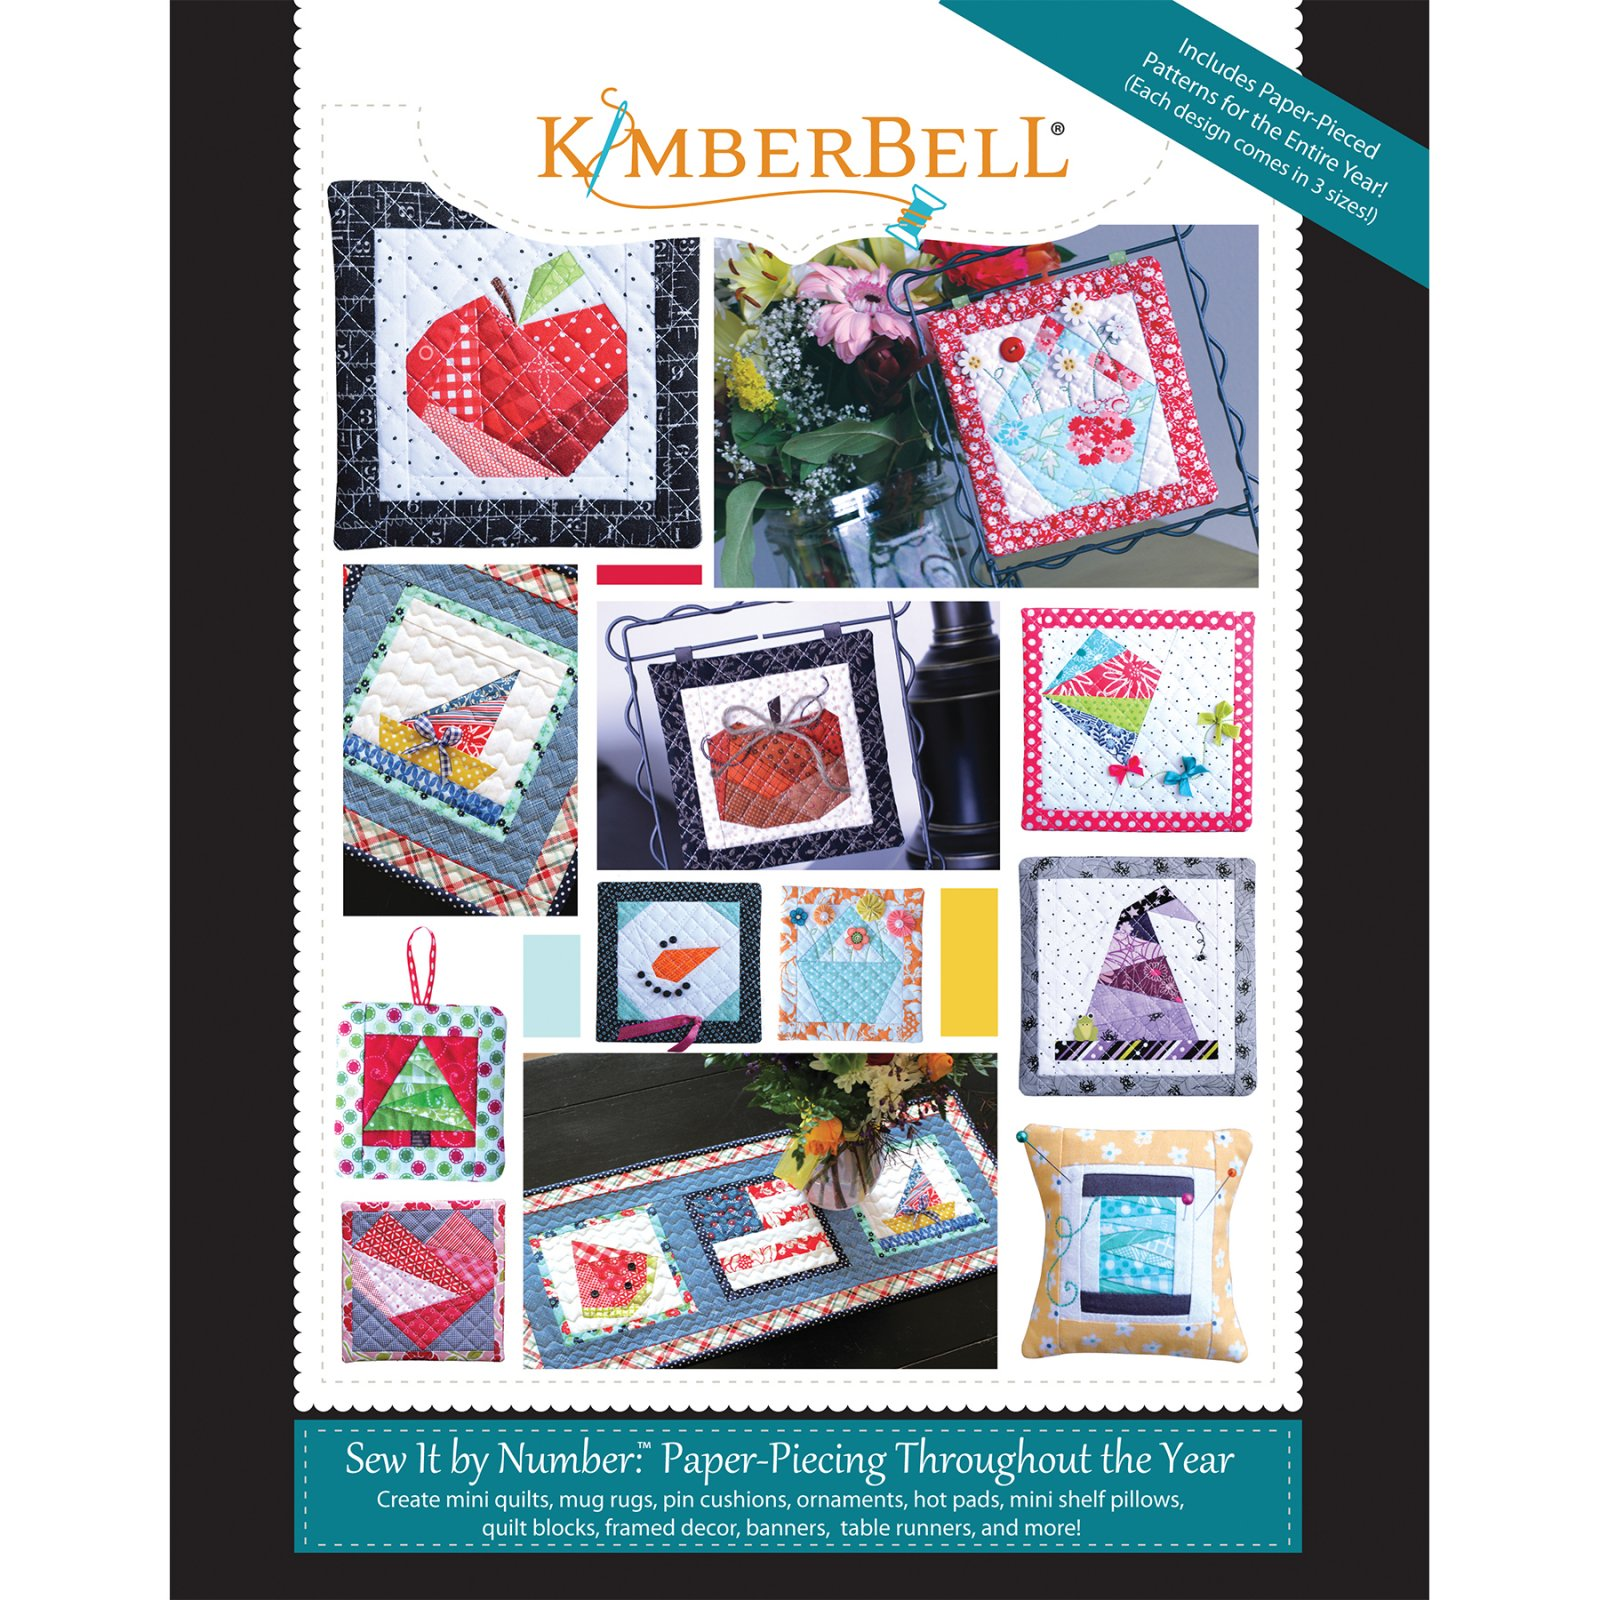 Sew It by Number: Paper-Piecing Throughout the Year